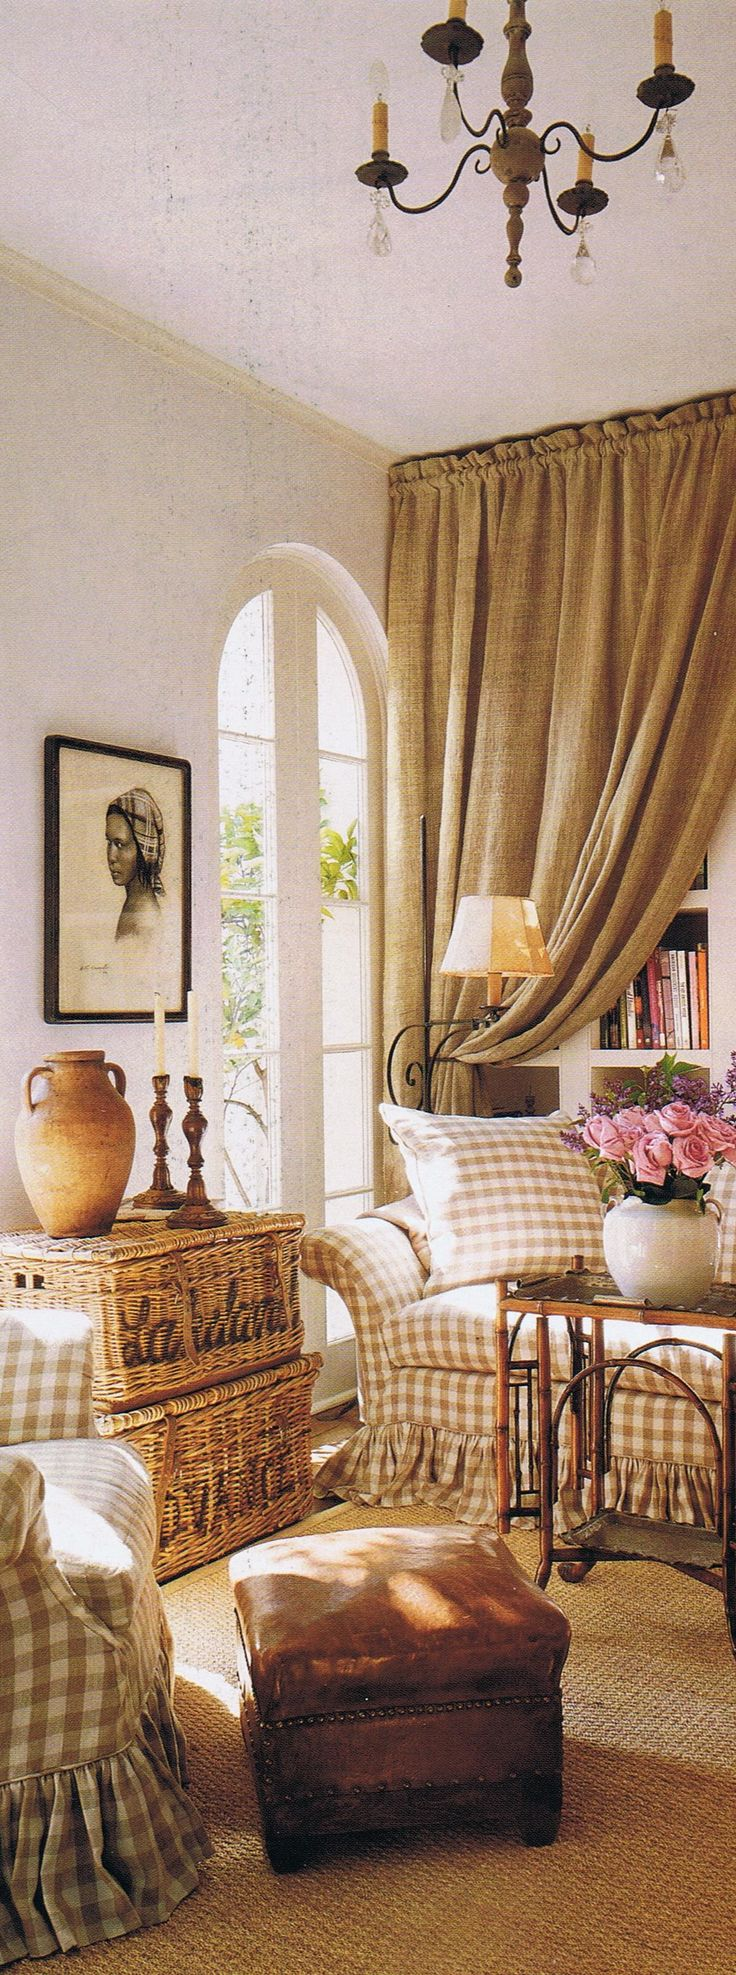 Neutral Living Room - Gingham plaid upholstery, burlap curtain, wicker baskets as side table